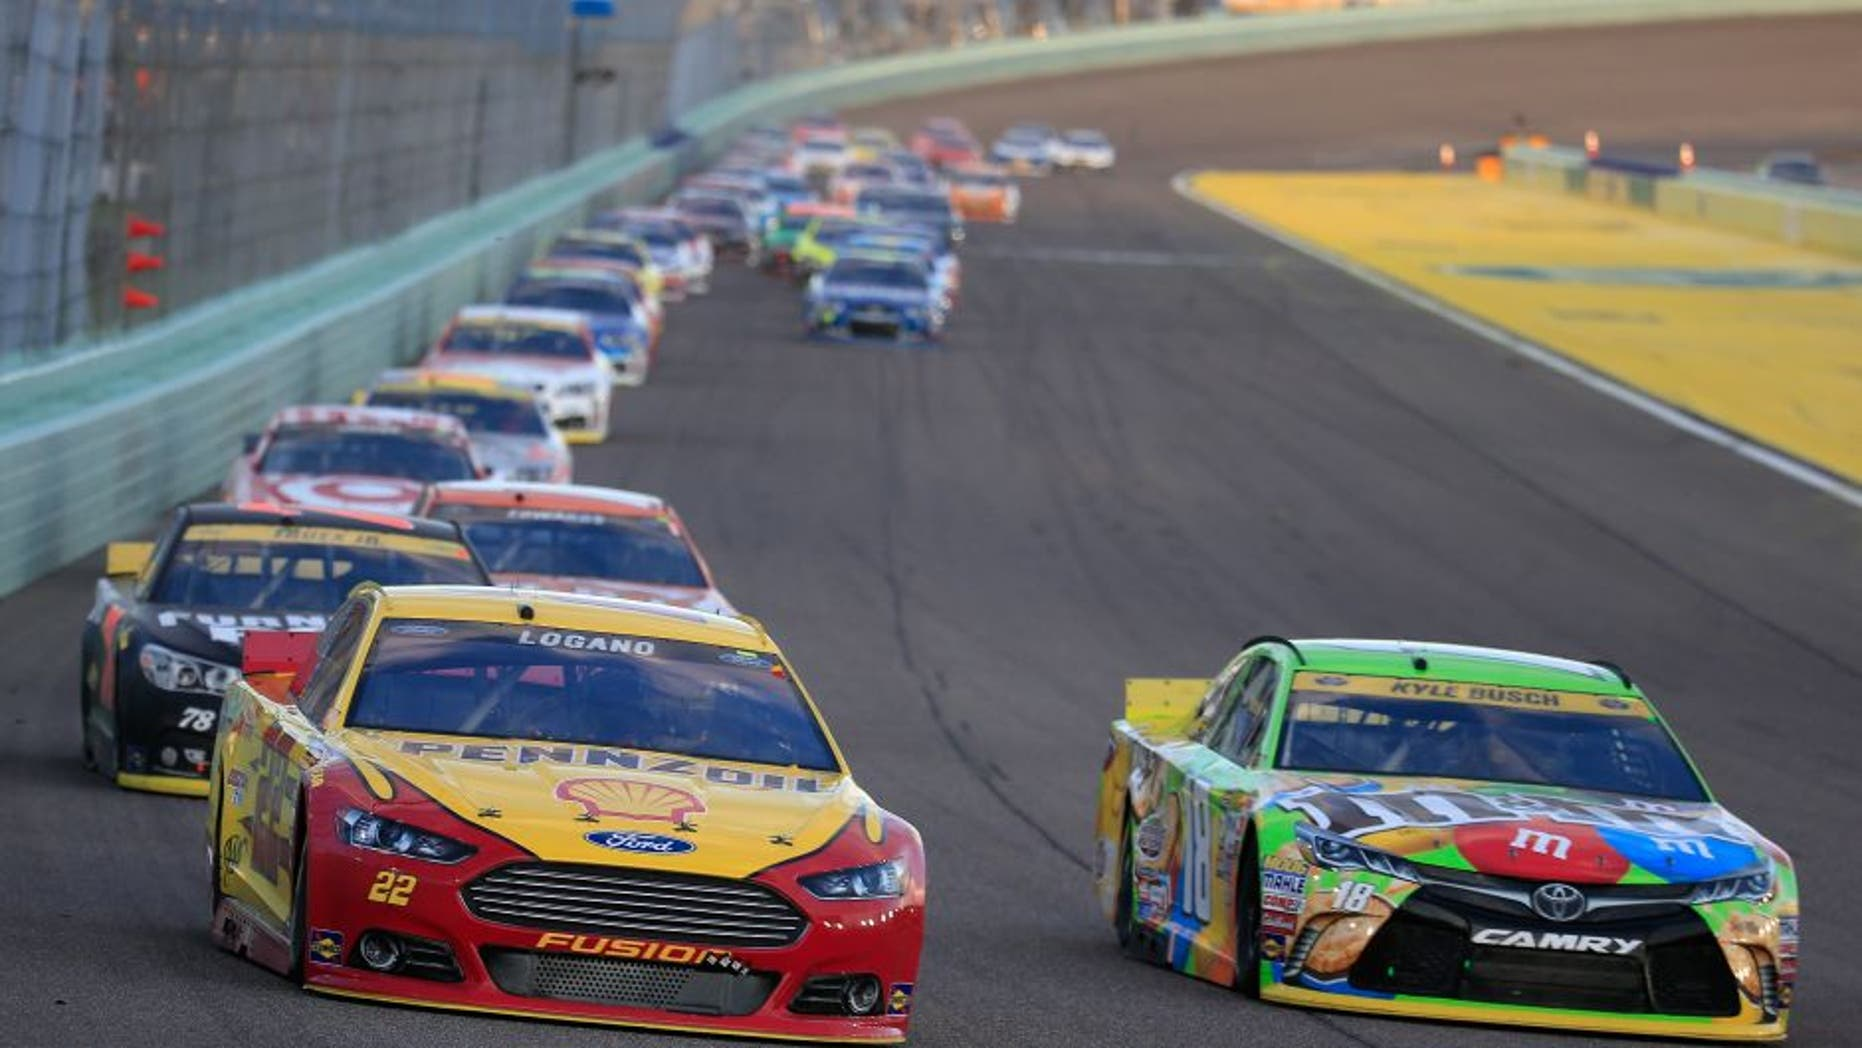 HOMESTEAD, FL - NOVEMBER 22: Joey Logano, driver of the #22 Shell Pennzoil Ford, and Kyle Busch, driver of the #18 M&M's Crispy Toyota, race during the NASCAR Sprint Cup Series Ford EcoBoost 400 at Homestead-Miami Speedway on November 22, 2015 in Homestead, Florida. (Photo by Chris Trotman/NASCAR via Getty Images)